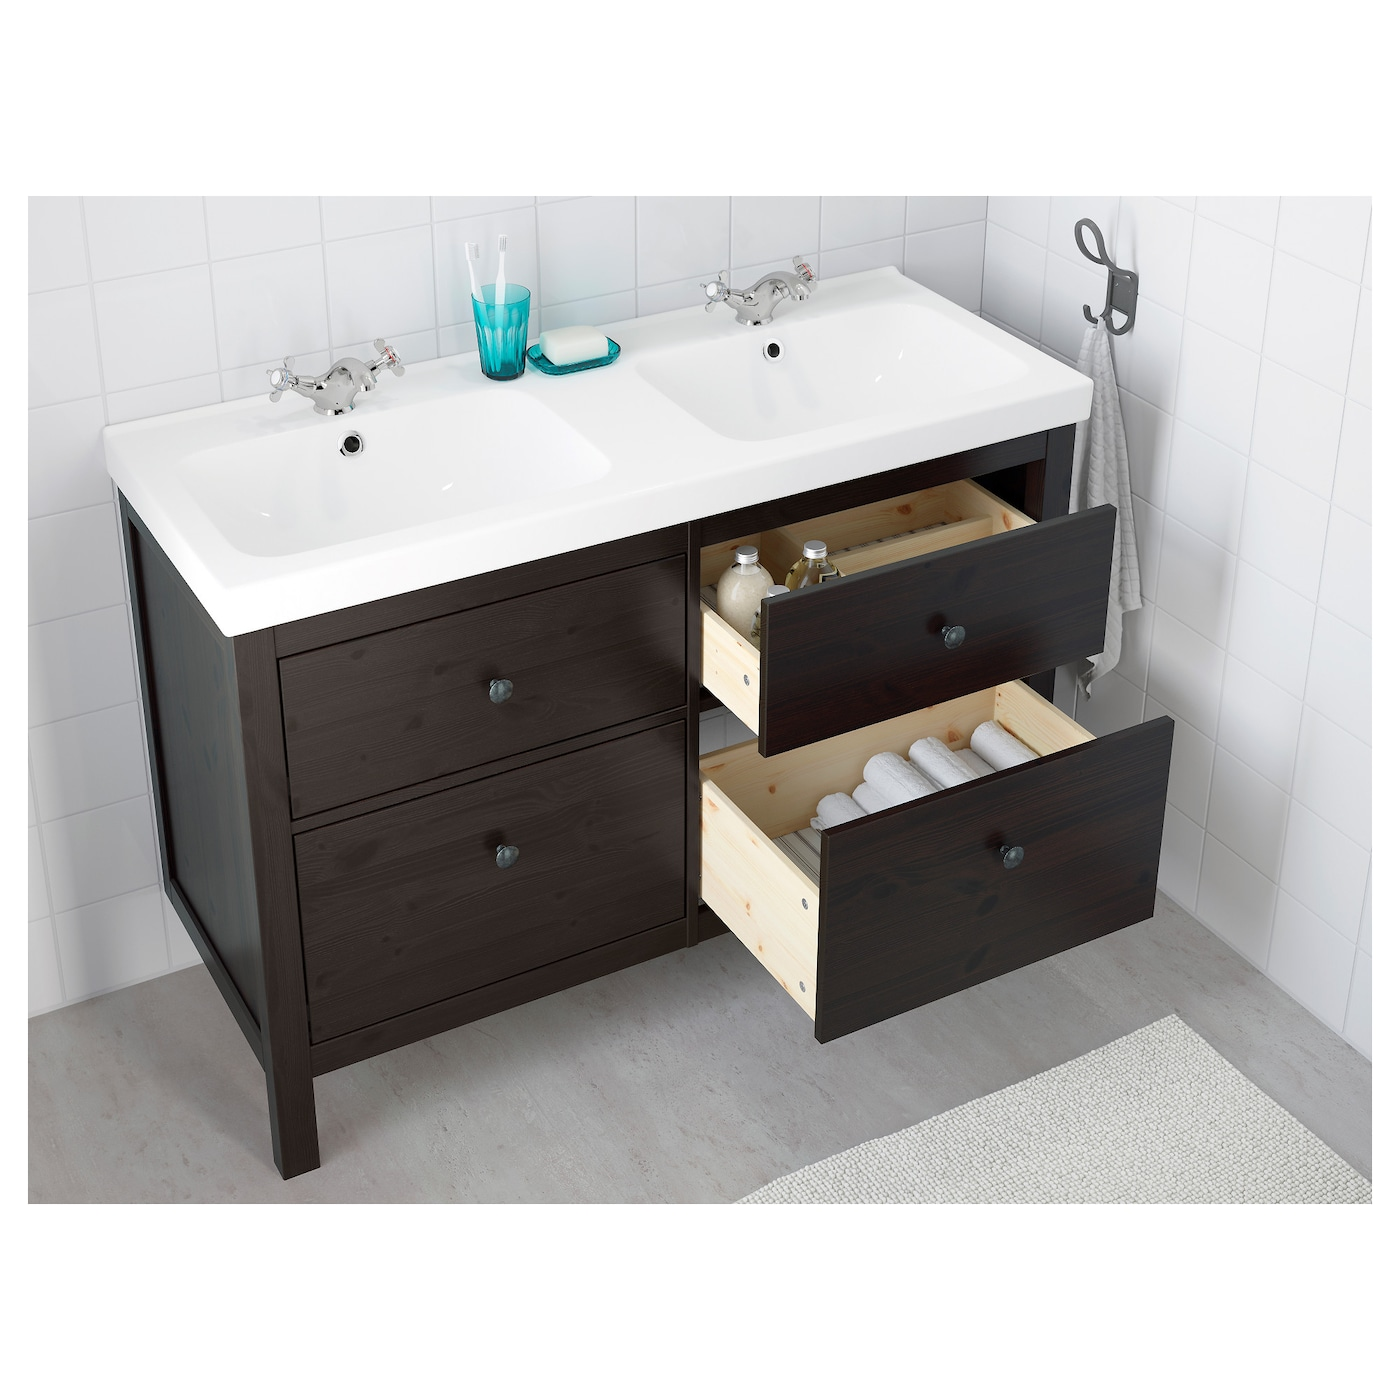 odensvik hemnes meuble lavabo 4tir teinture noir brun. Black Bedroom Furniture Sets. Home Design Ideas